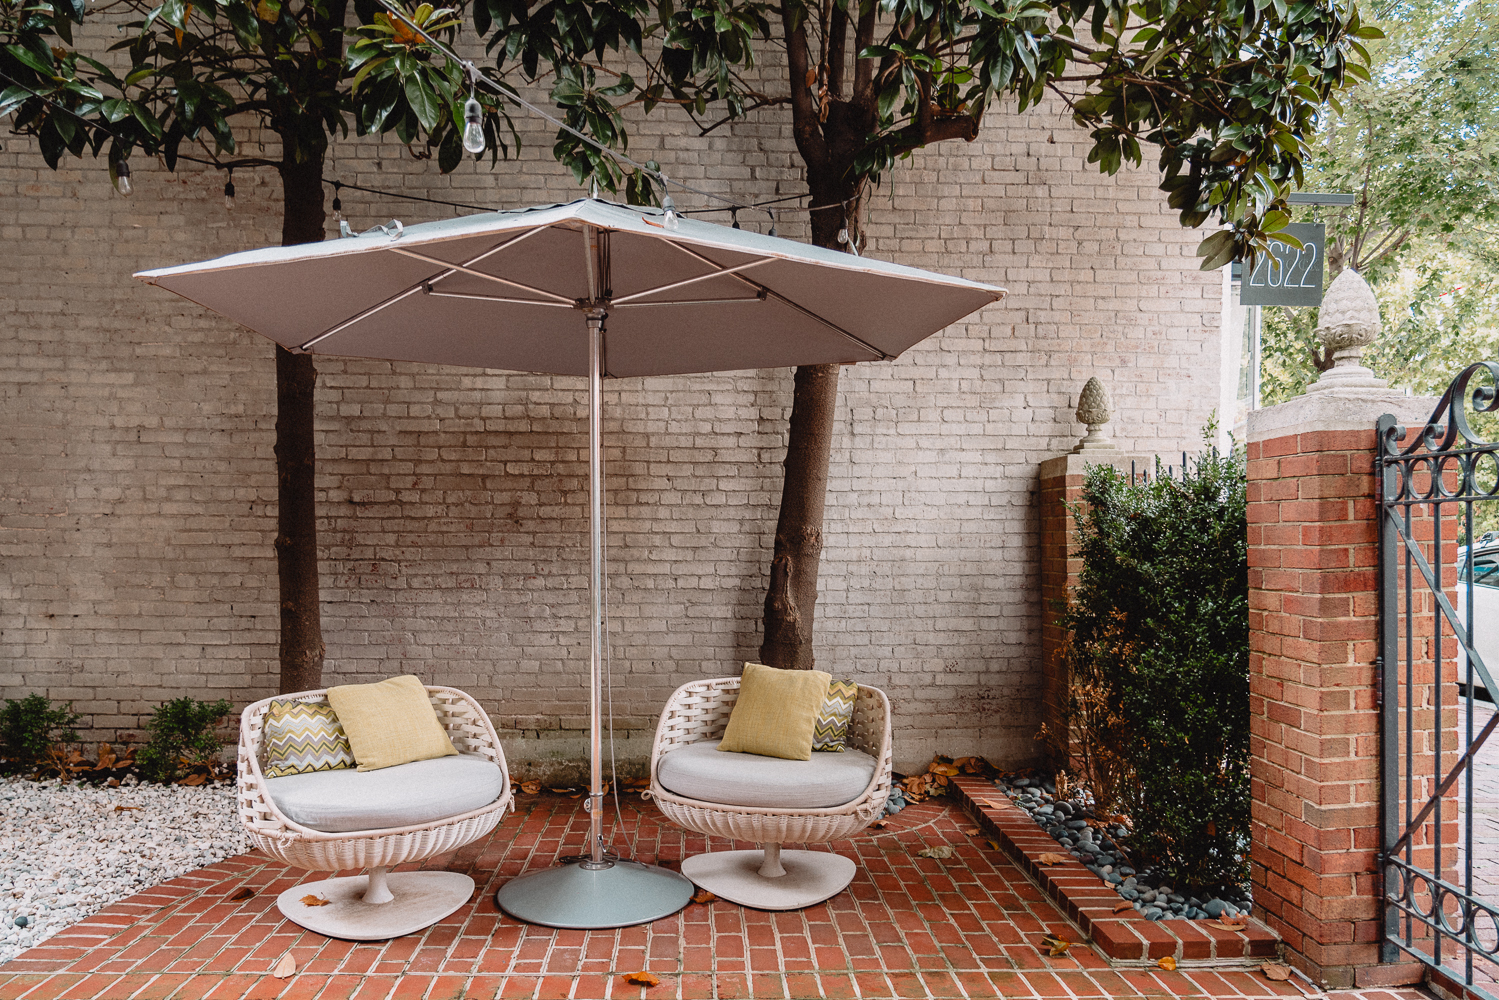 Outdoor spaces at the Avery, in Georgetown, Washington, DC.